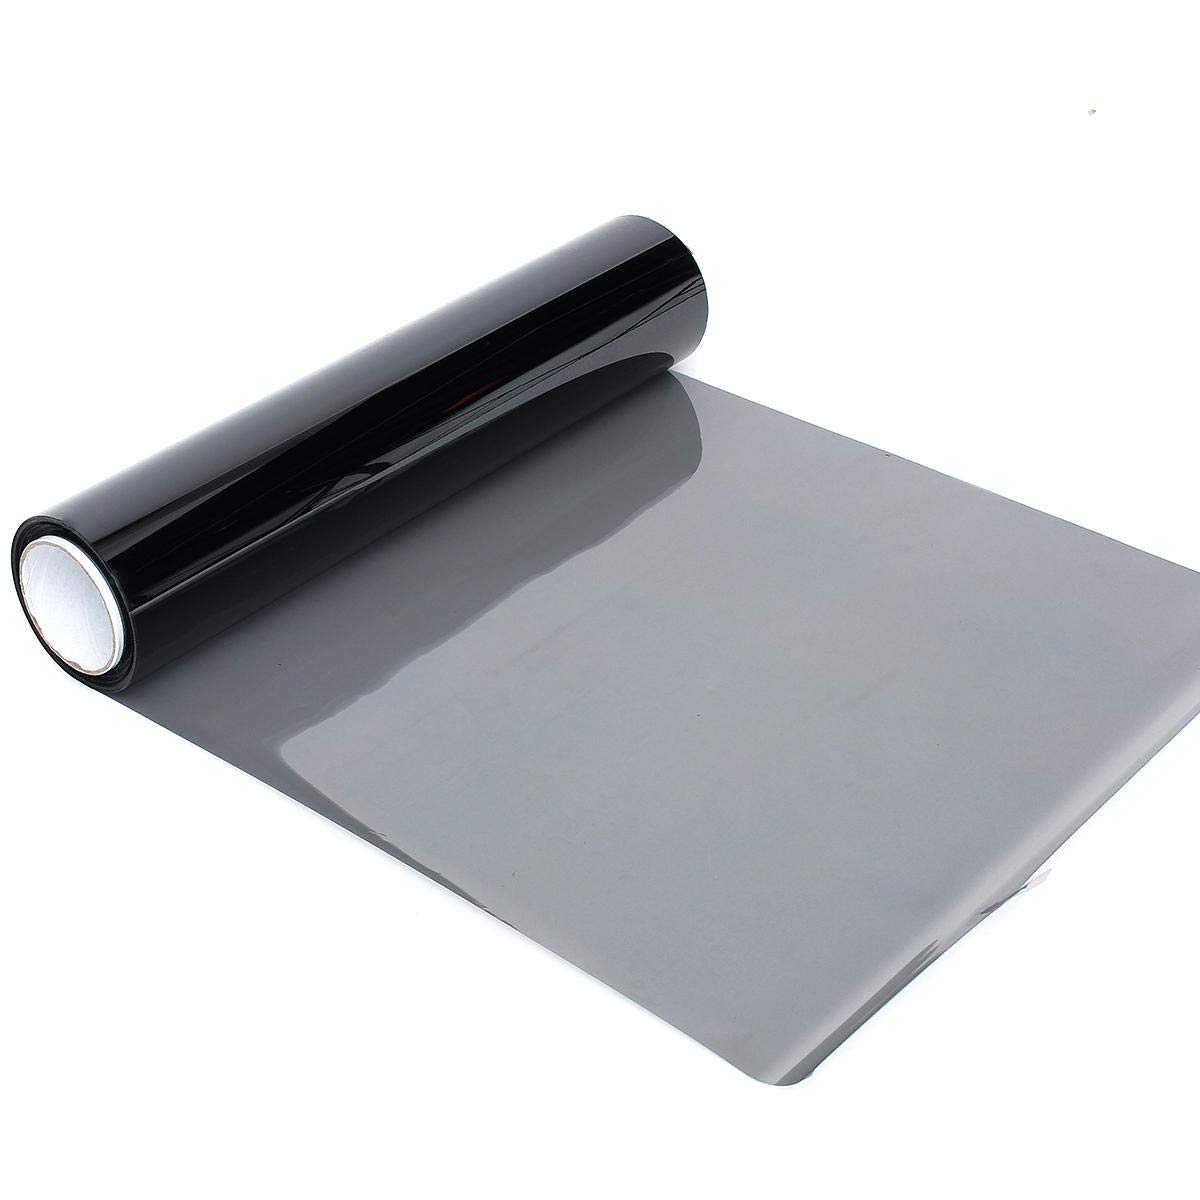 Stock_Home, Raw Materials, 50cmx60m 50% VLT Black Car Home Glass Window Tint Tinting Film Vinyl Roll Home